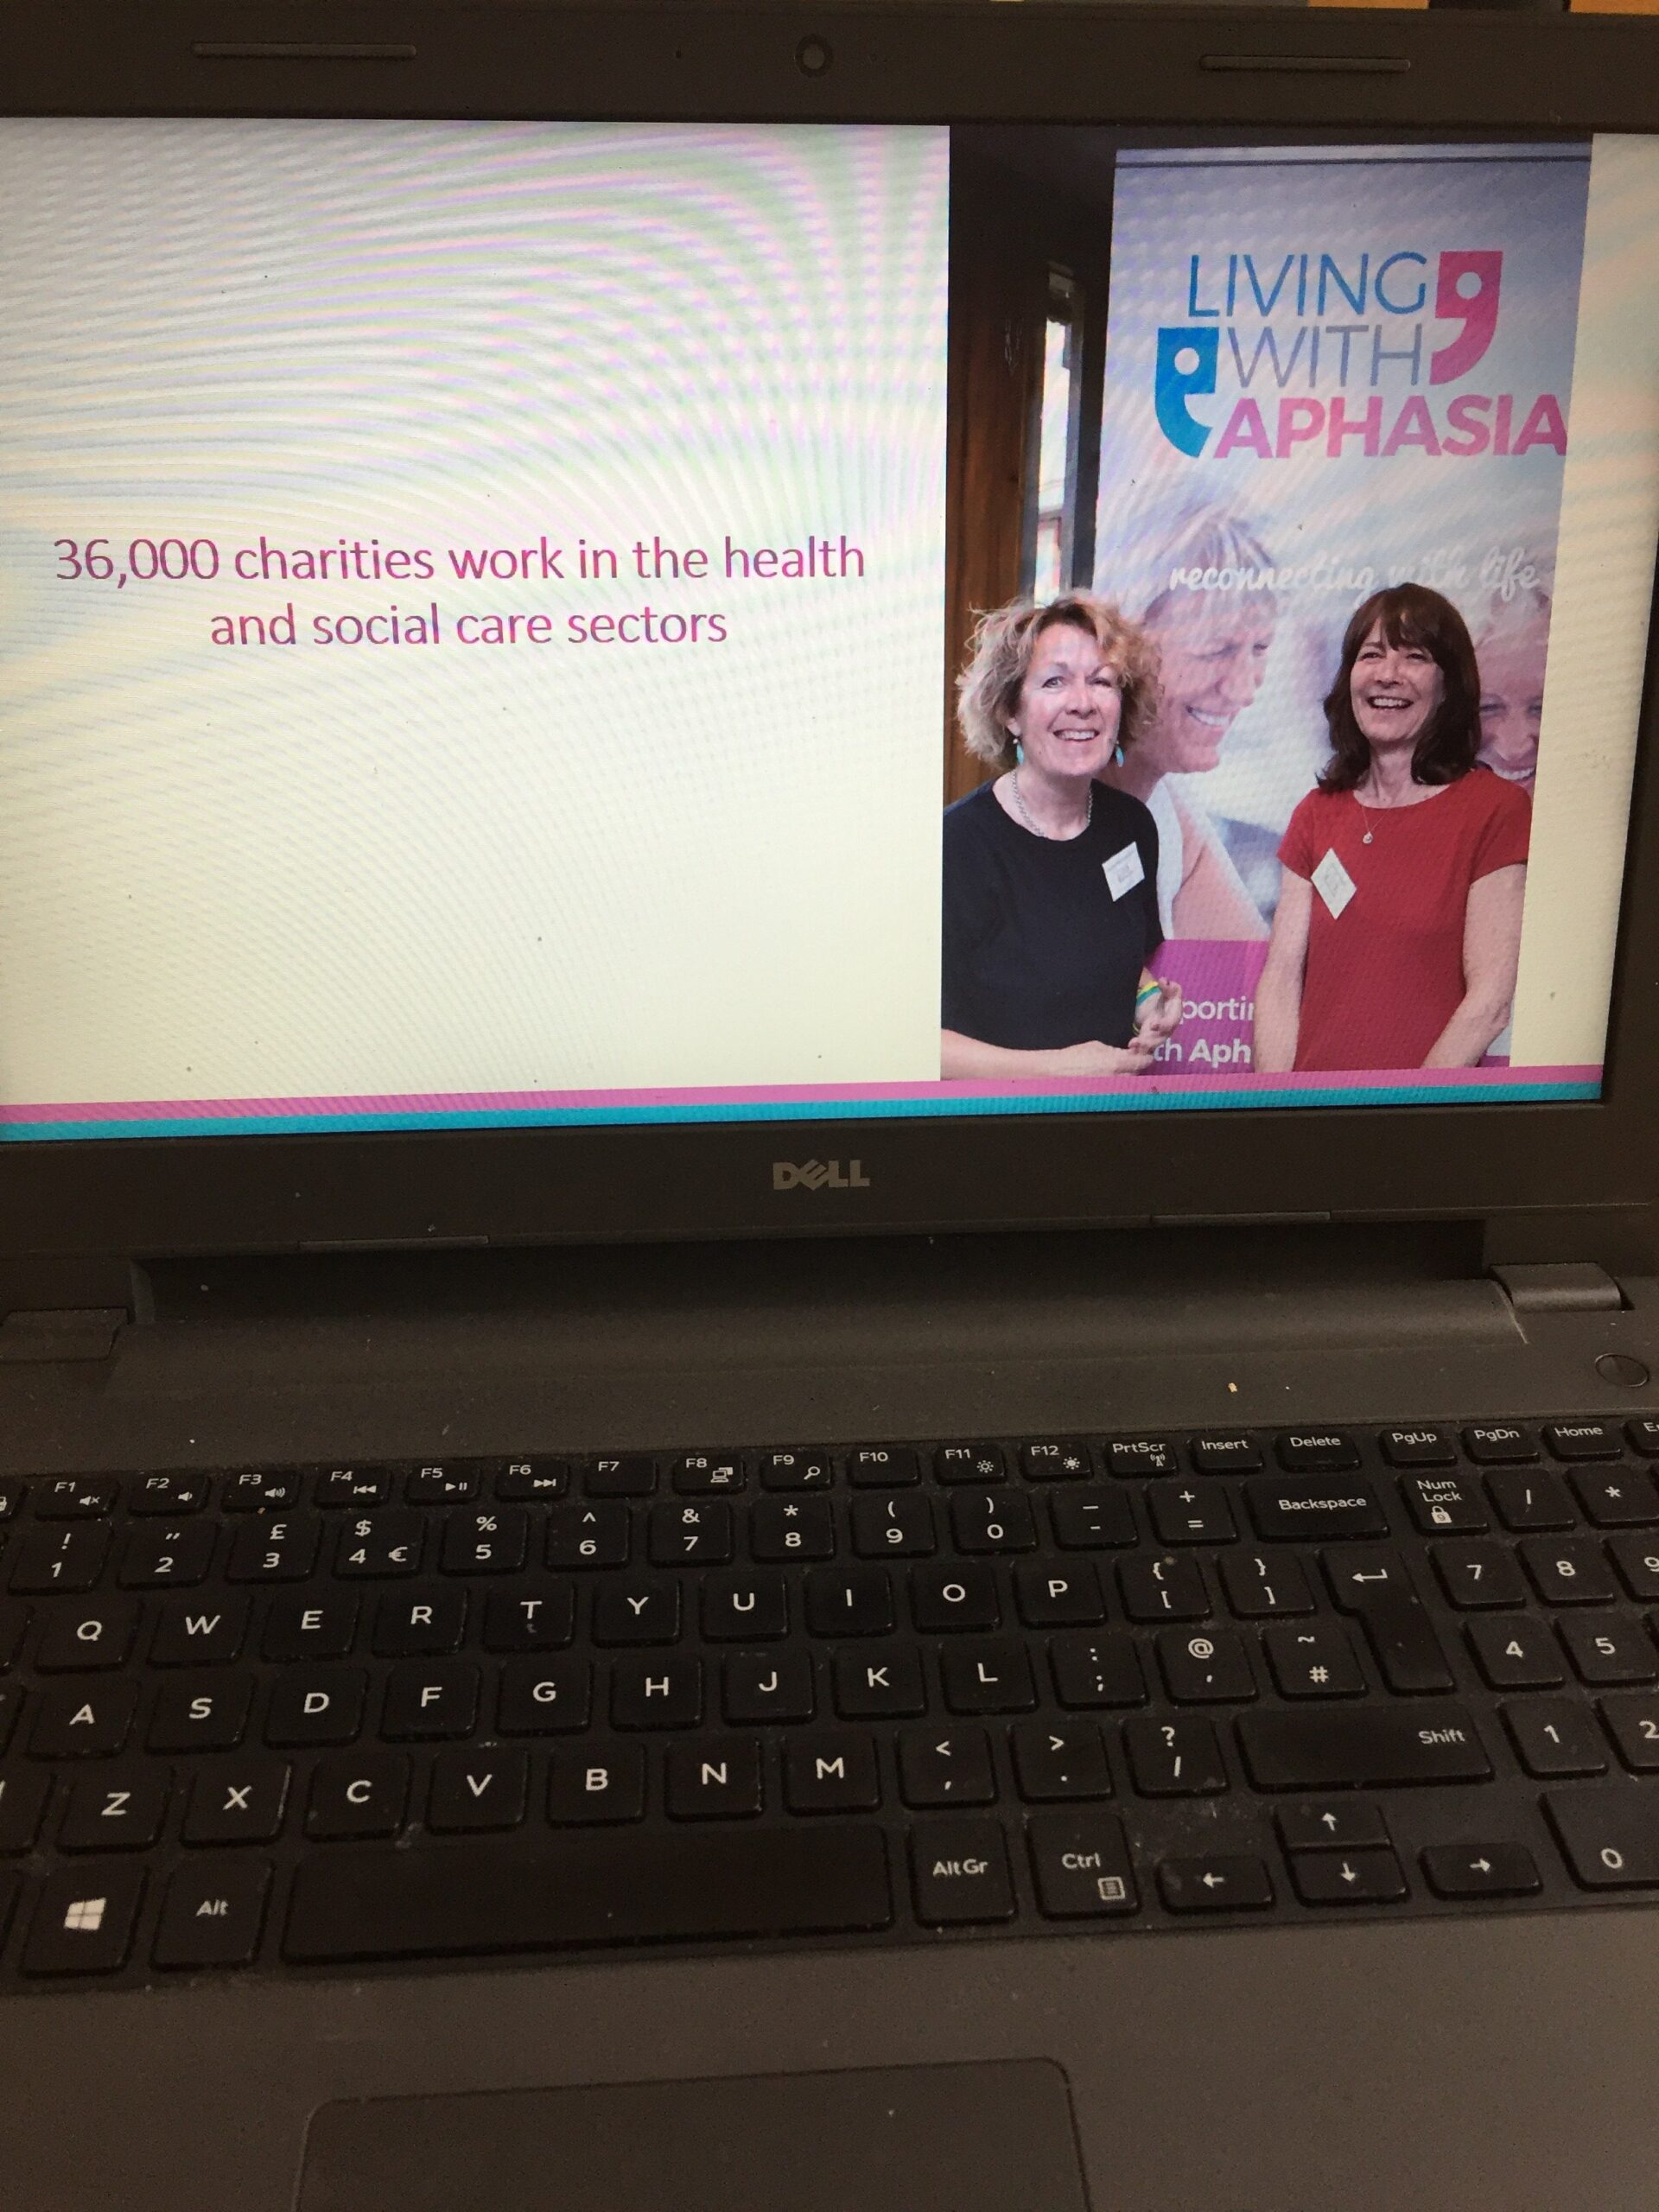 charity living with aphasia together working in partnership